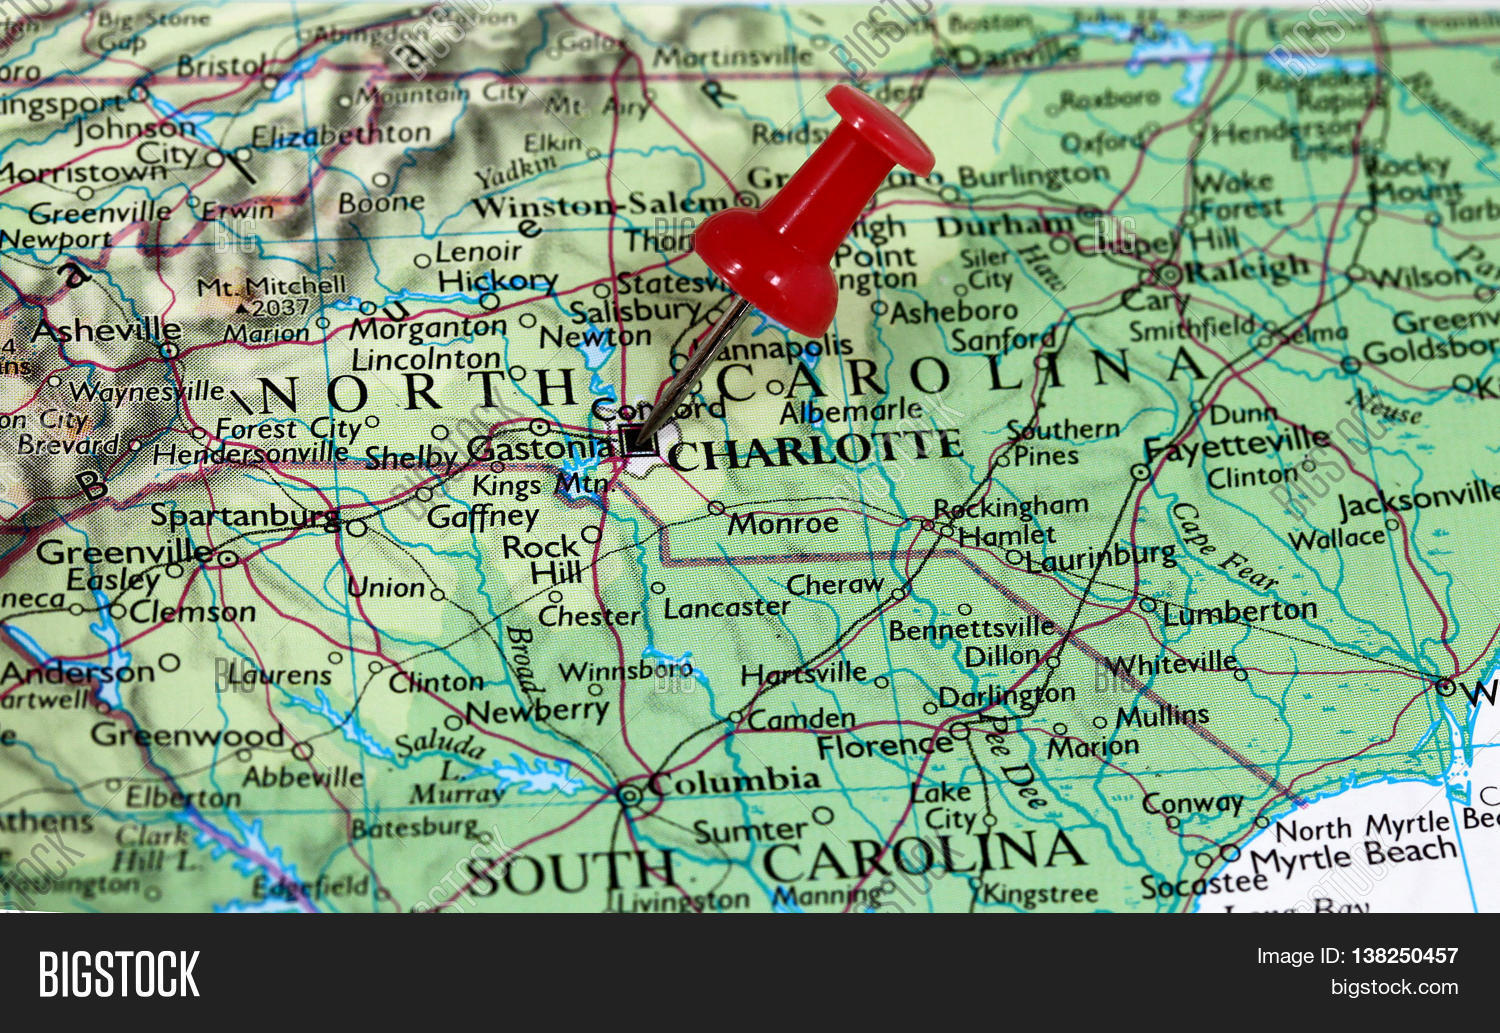 Charlotte In Usa Map.Map Pin Point Image Photo Free Trial Bigstock